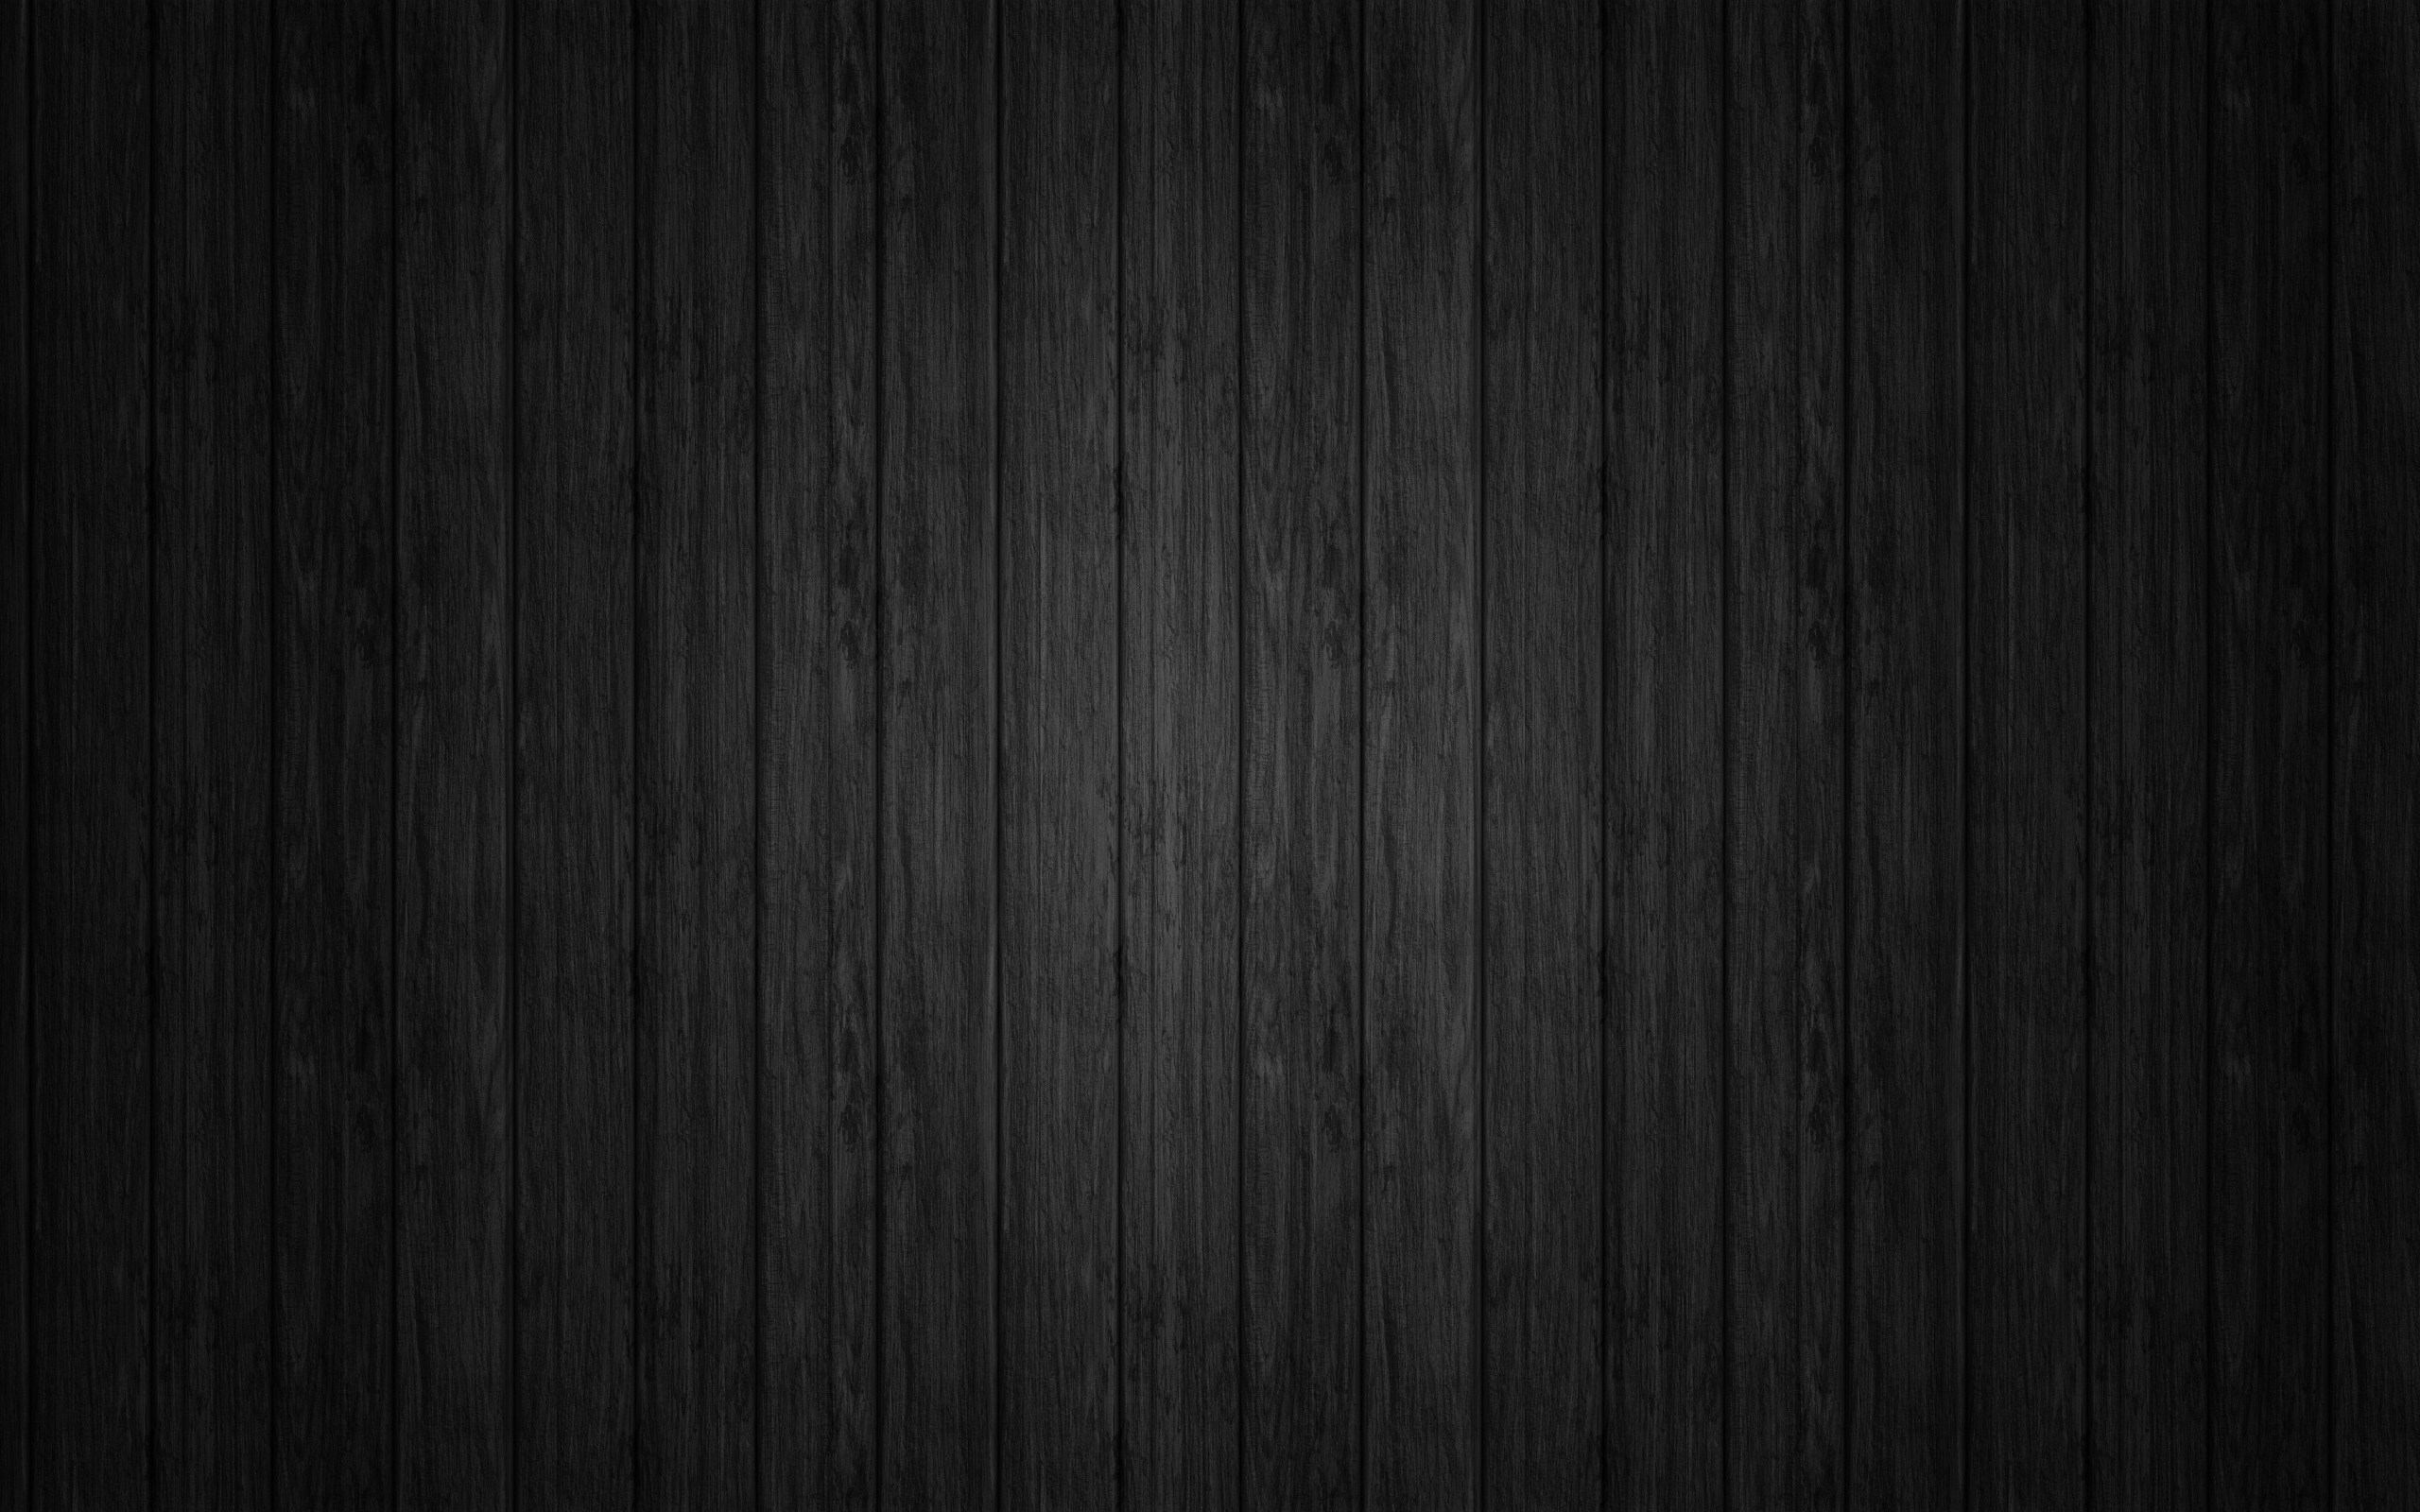 Wood Textured Background Wallpaper